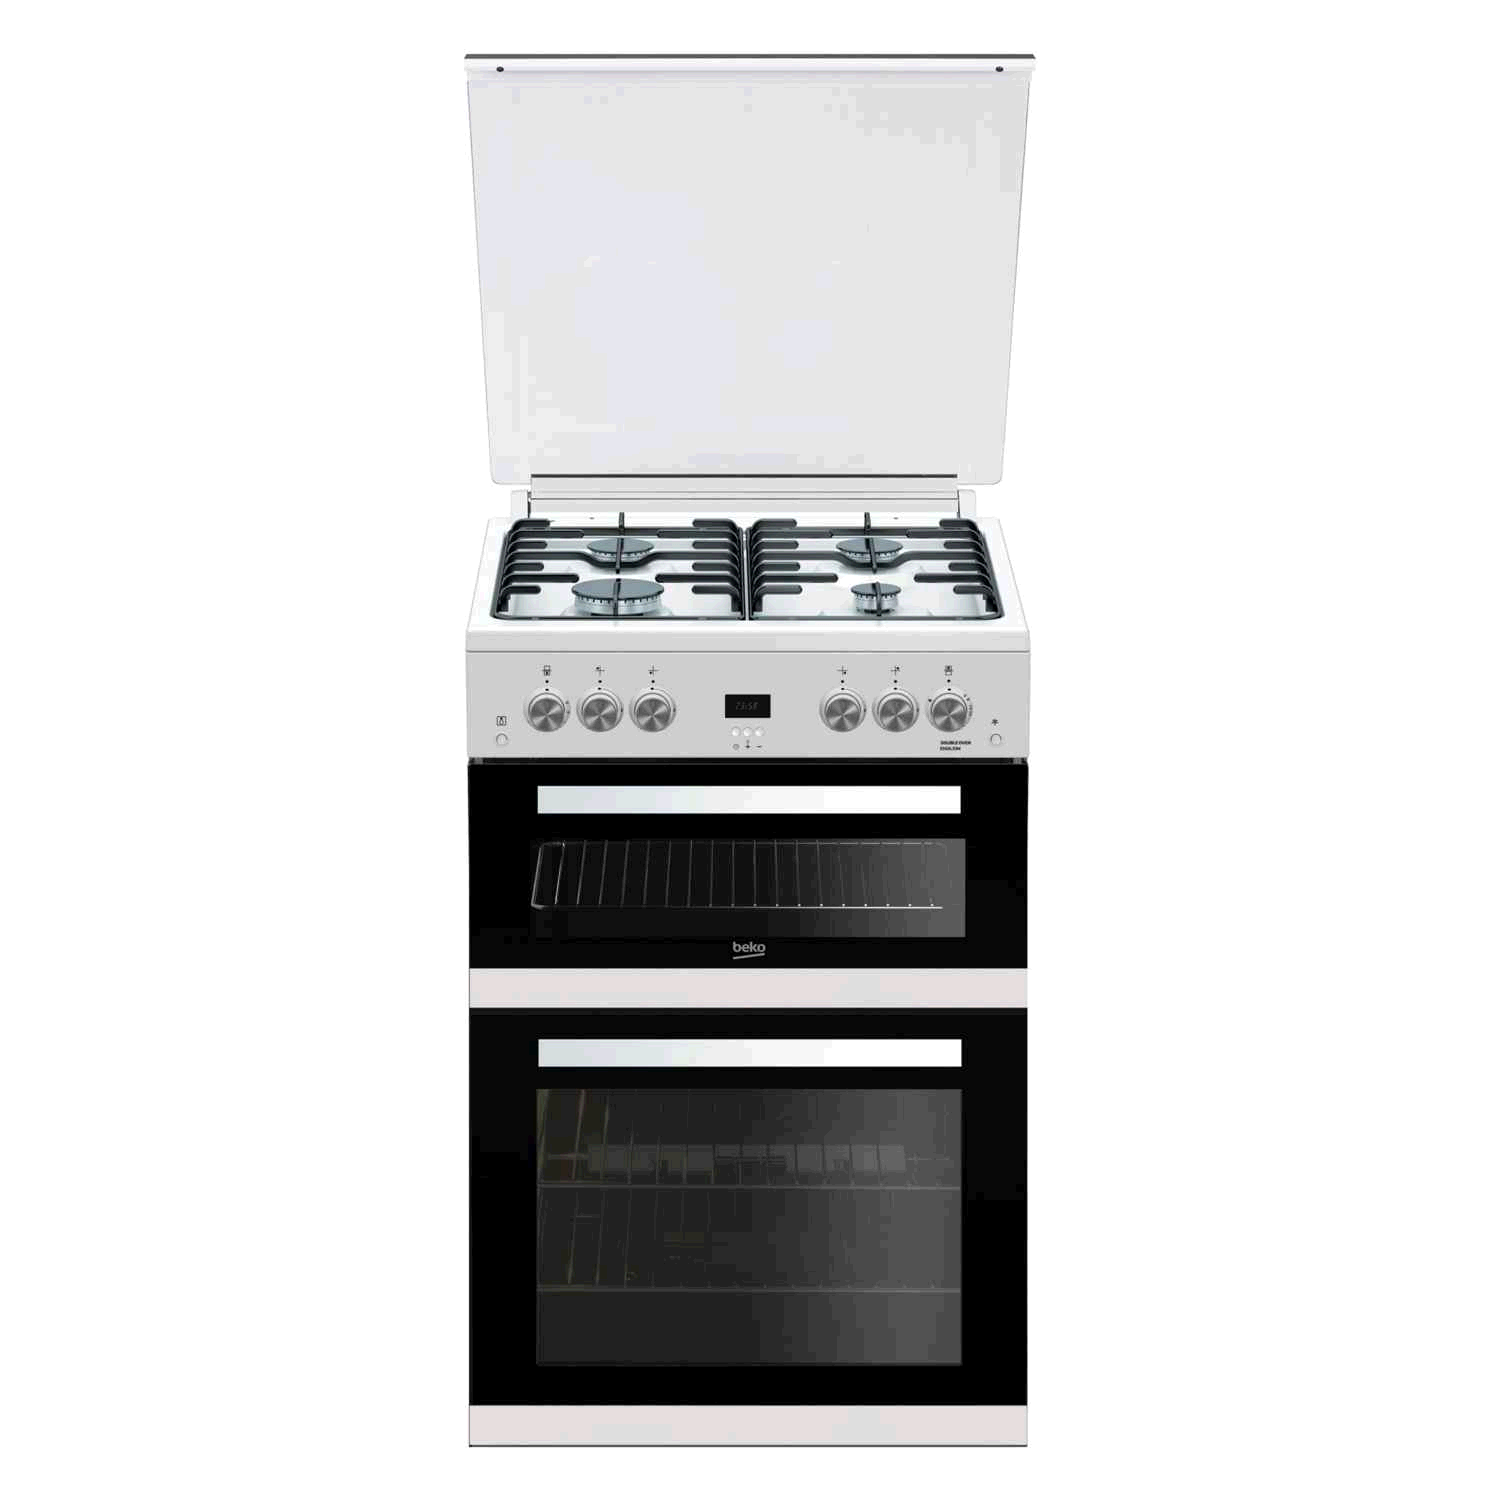 Beko EDG6L33WDouble Oven Gas Cooker White Ceramic Hob 60cm LPG Convertible Glass Lid